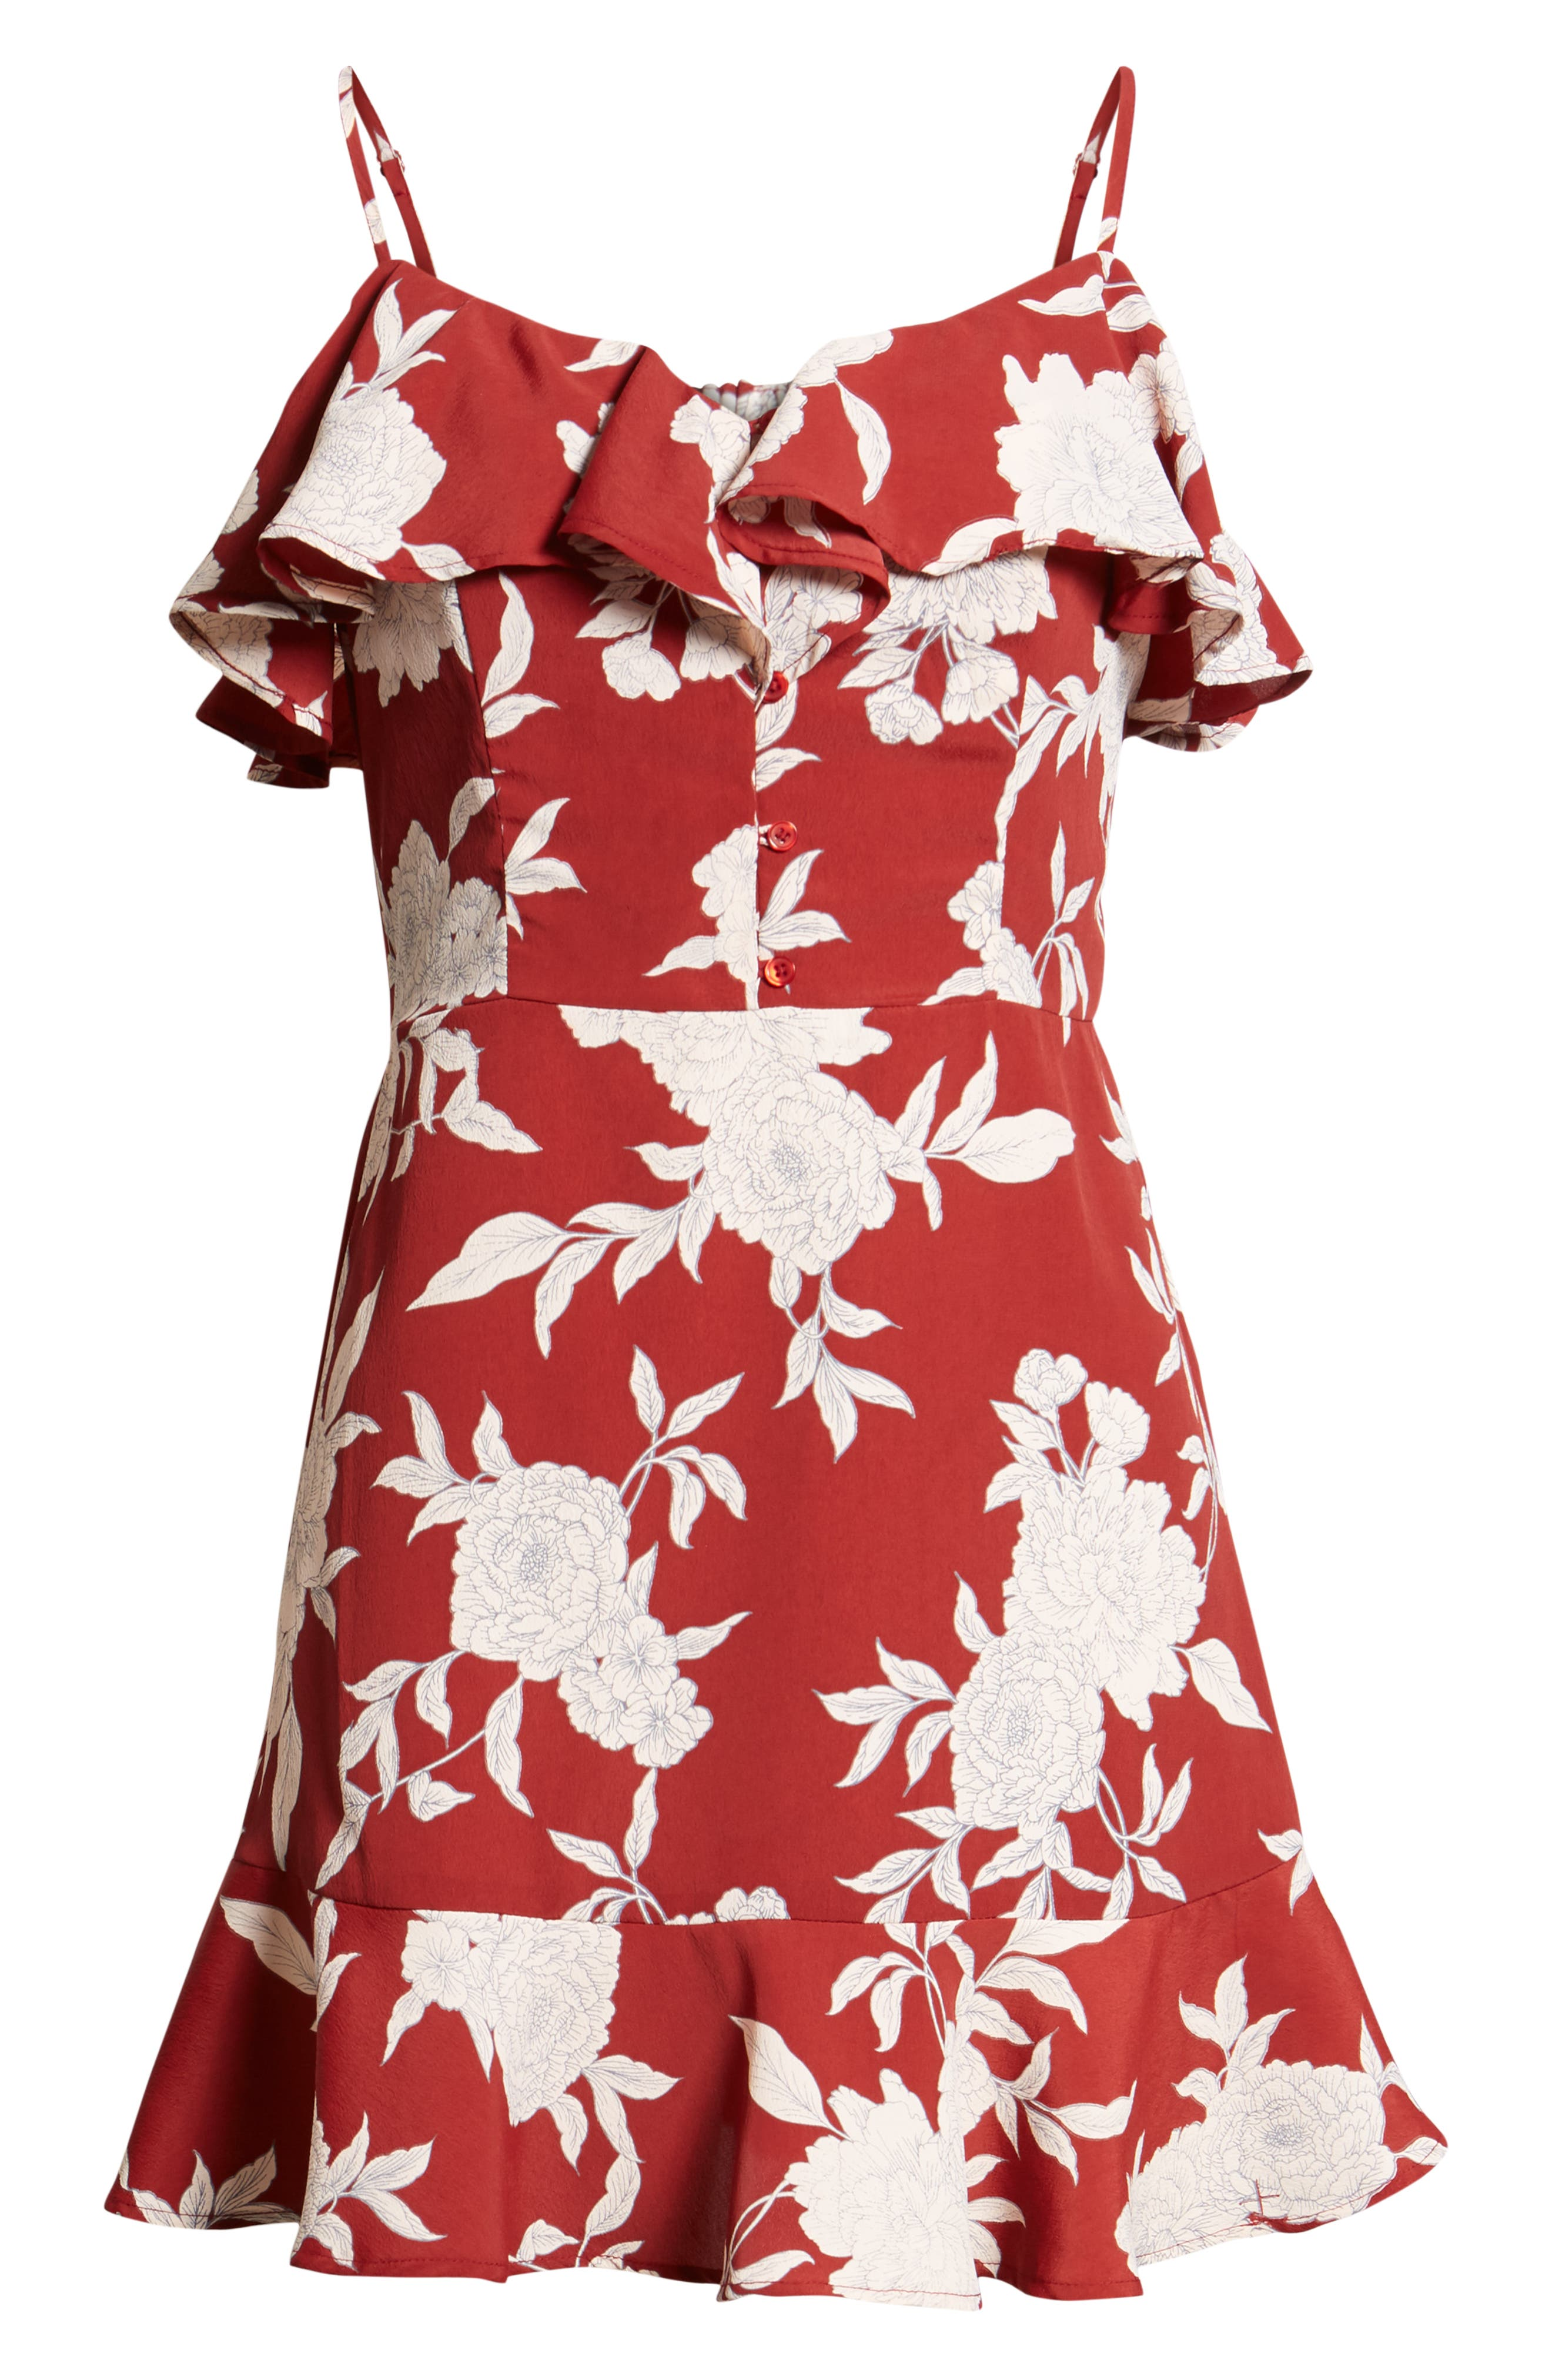 Floral Print Ruffle Dress,                             Alternate thumbnail 7, color,                             Red Ground Floral